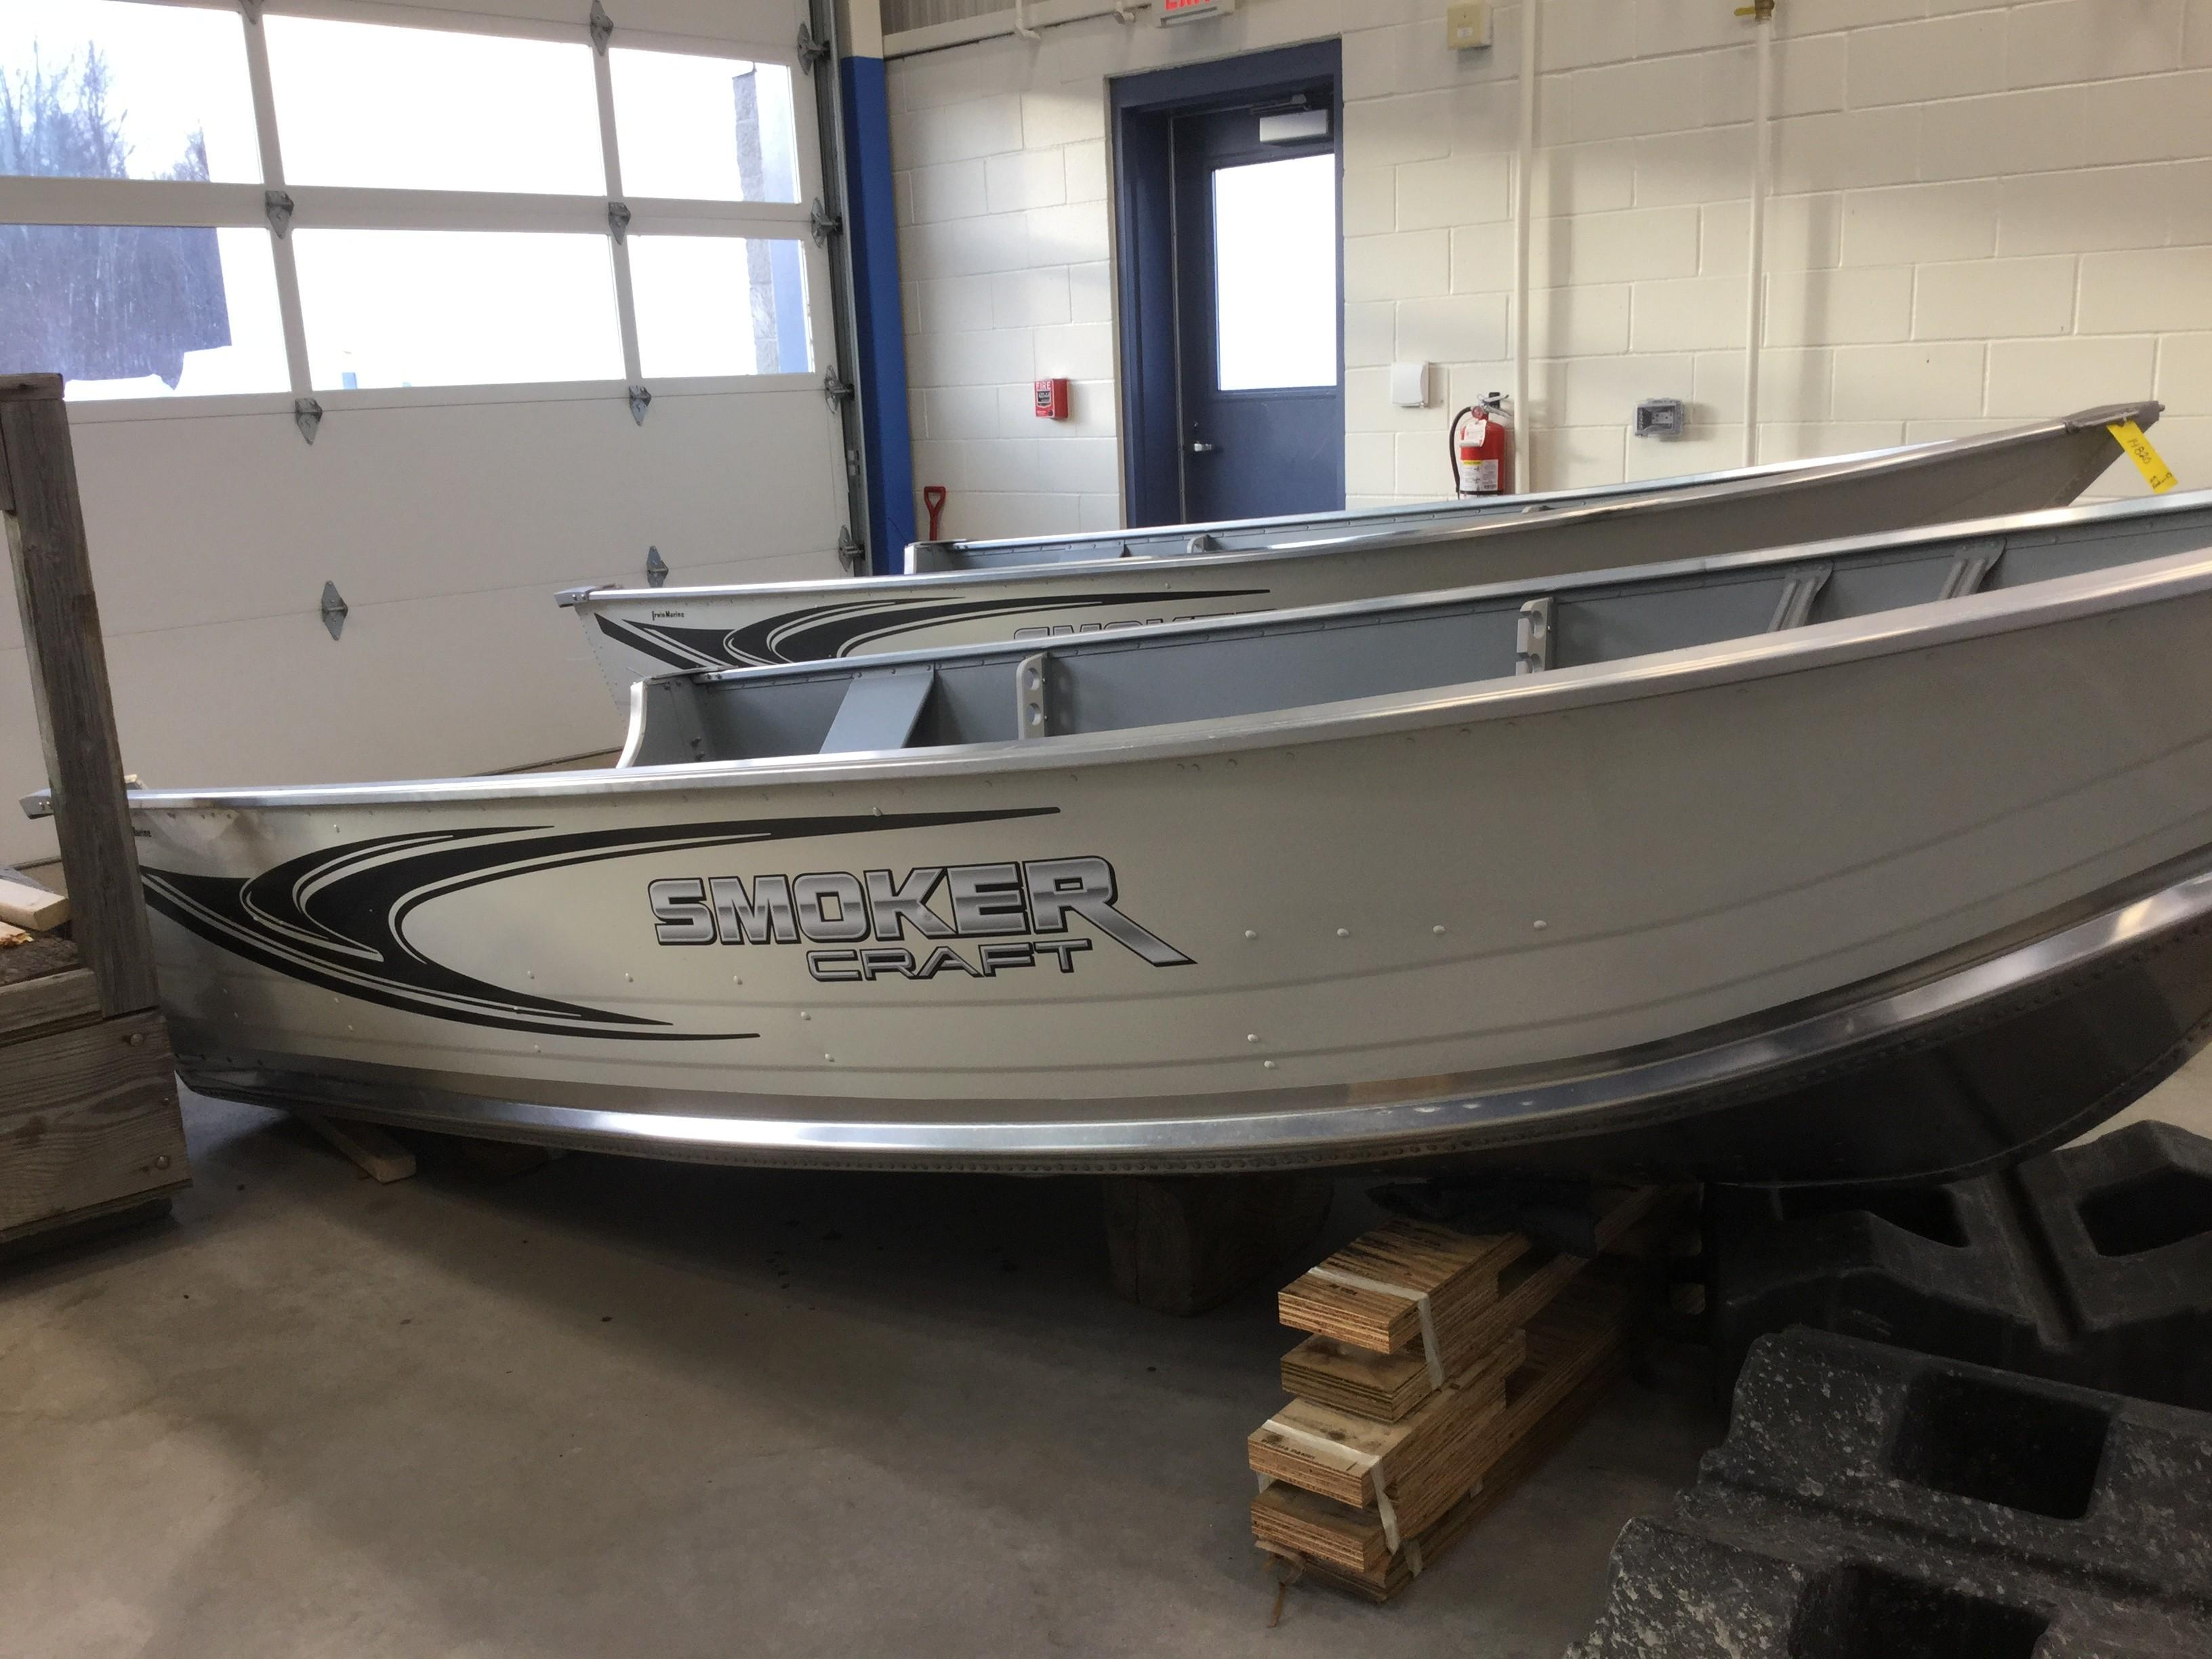 2019 Smoker Craft boat for sale, model of the boat is 13 Alaskan DLX & Image # 2 of 14